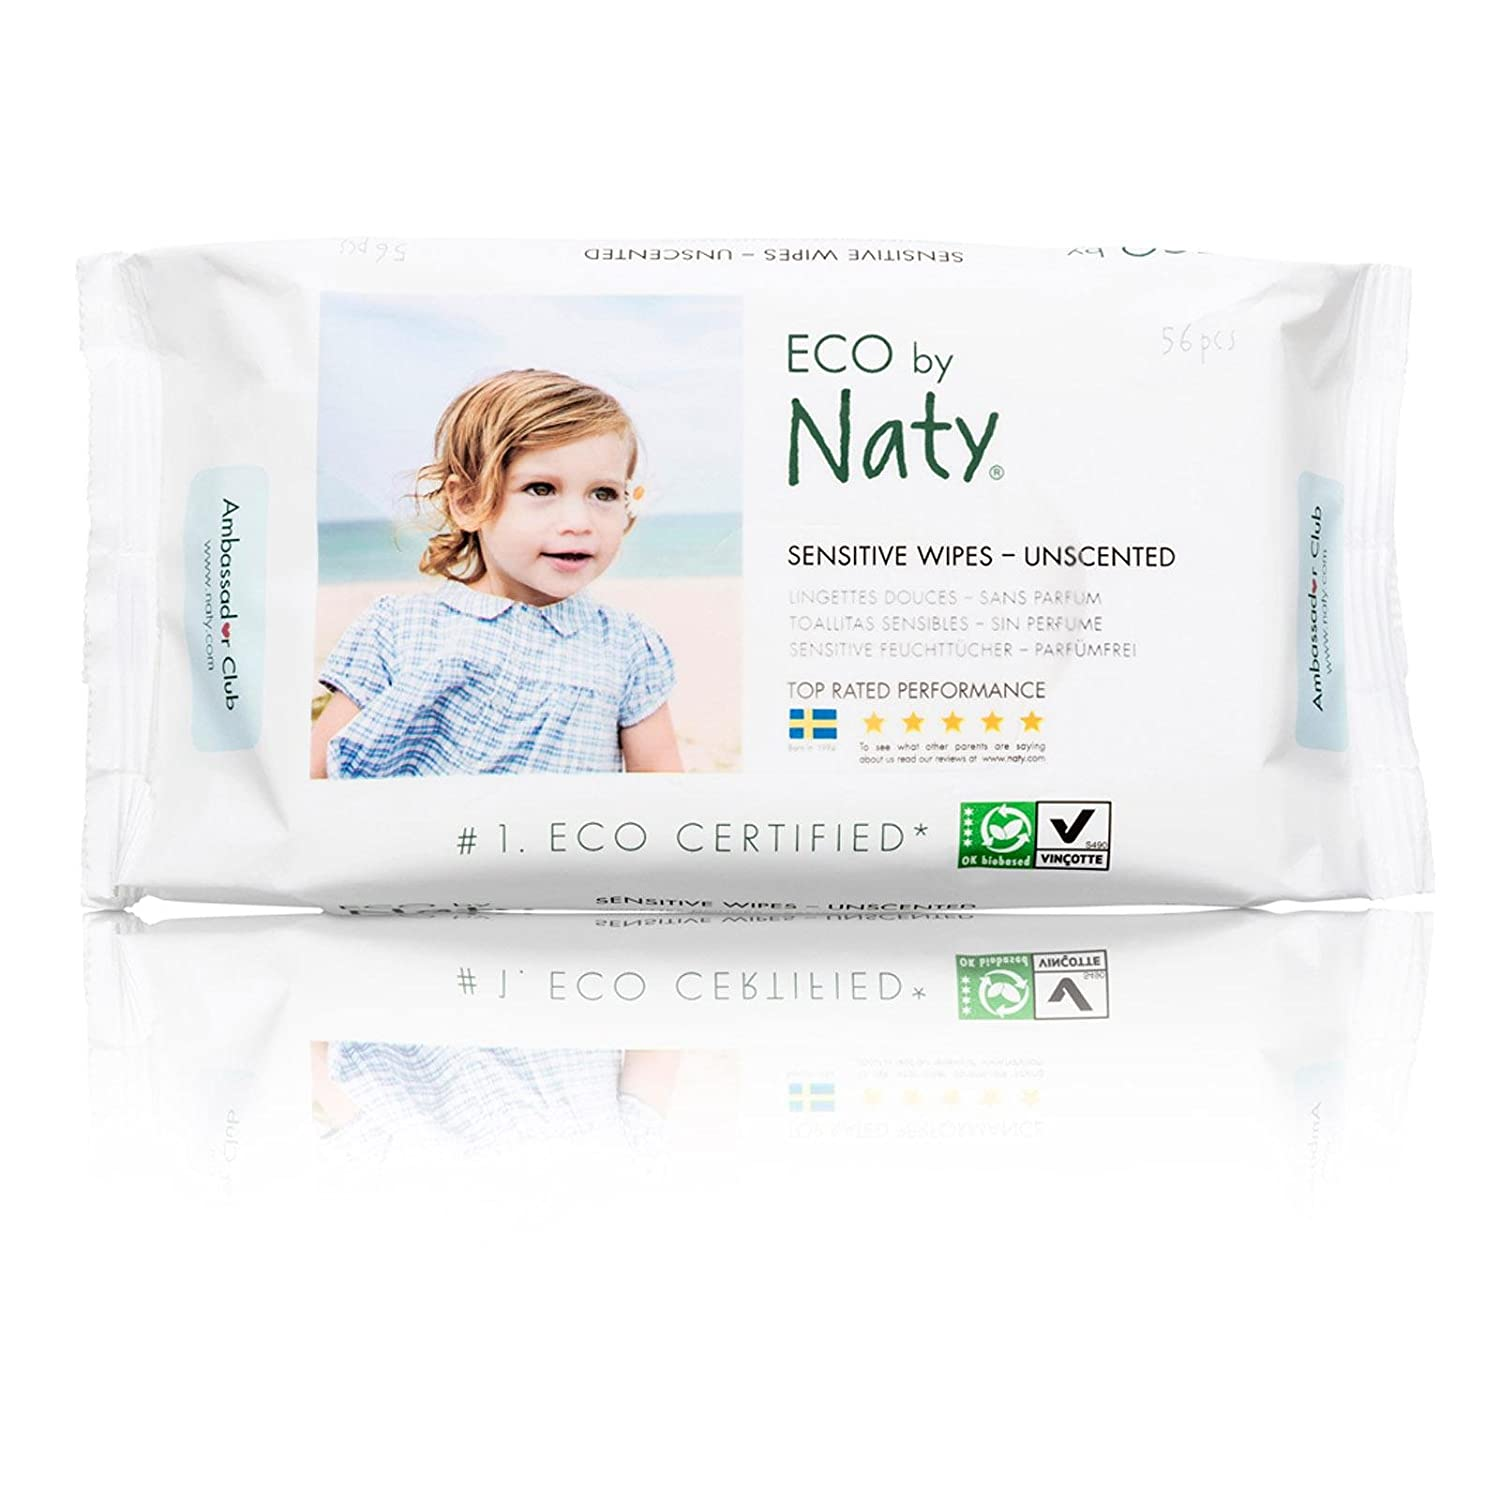 Amazon.com: Naty Eco Sensitive Lightly Unscented Wipes - 56 per pack -- 12 packs per case.: Health & Personal Care